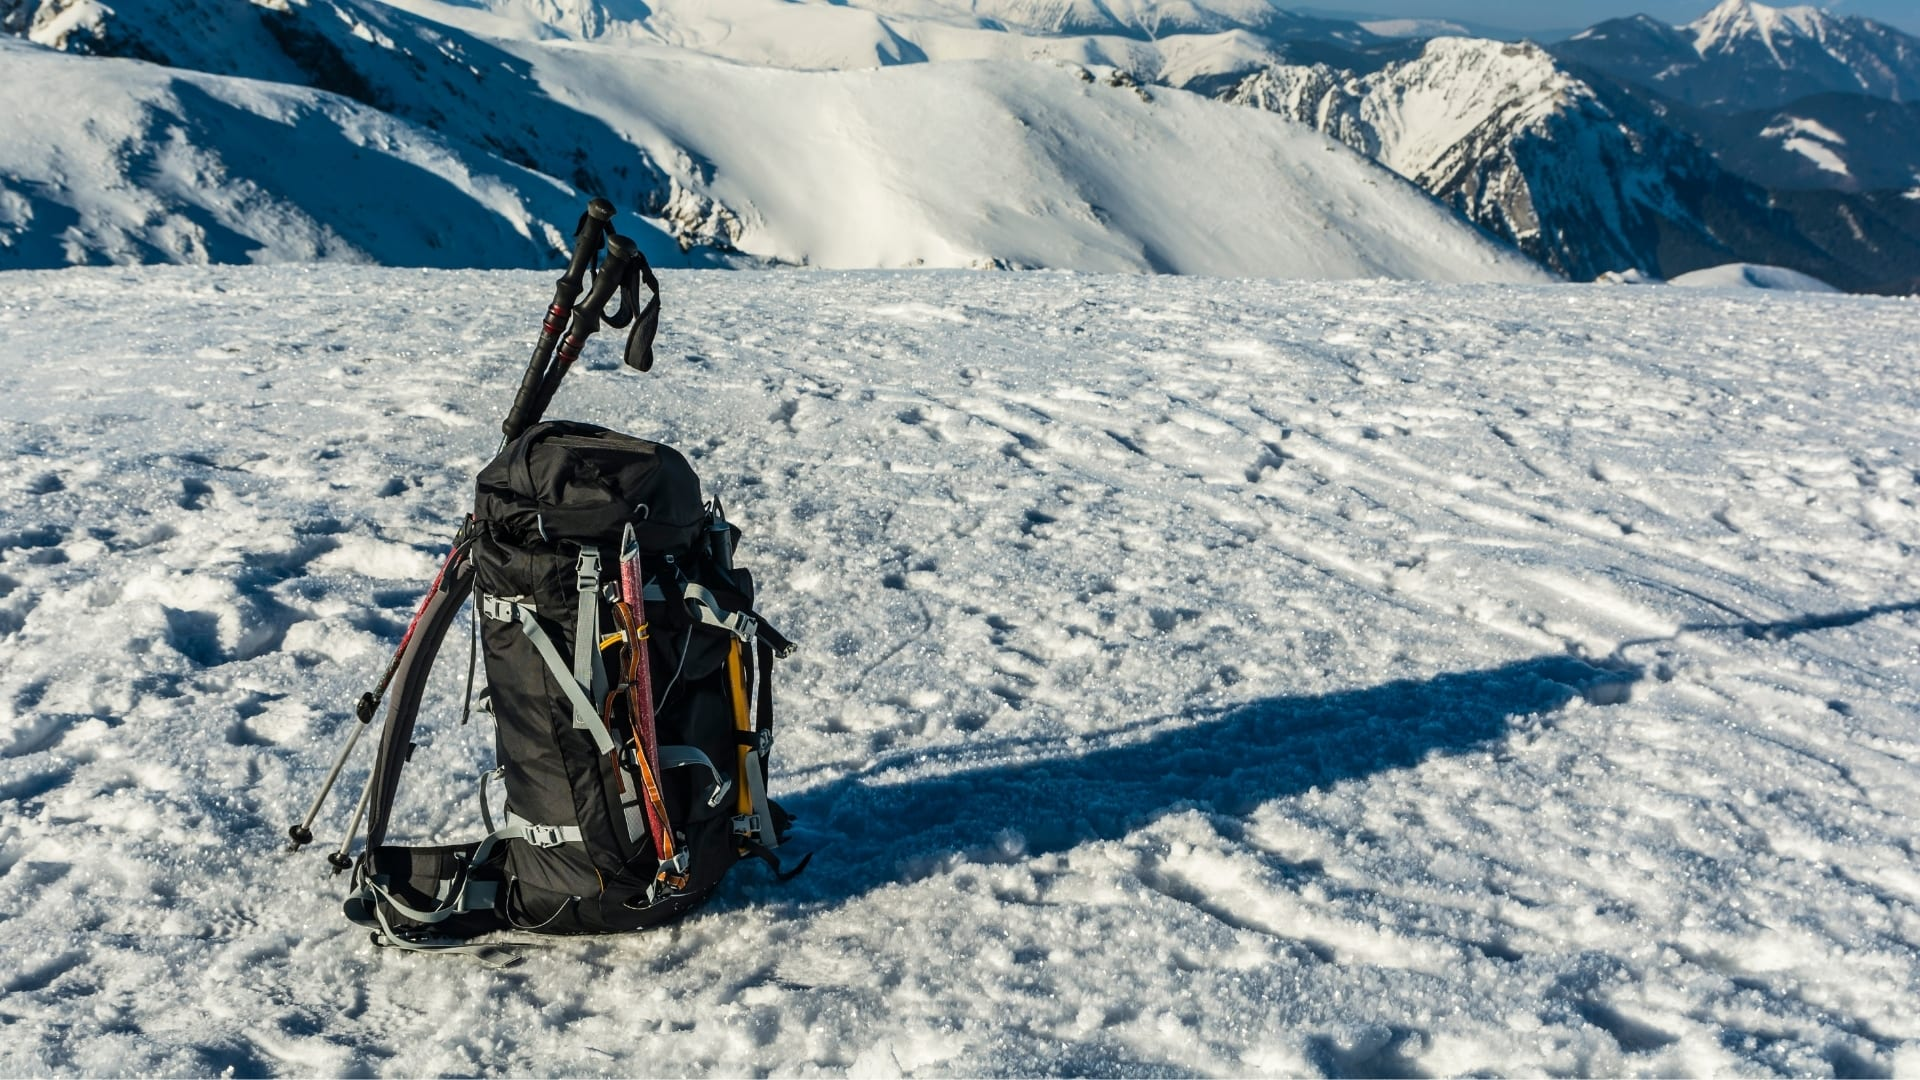 A backpack with an ice axe and hiking poles on the snow